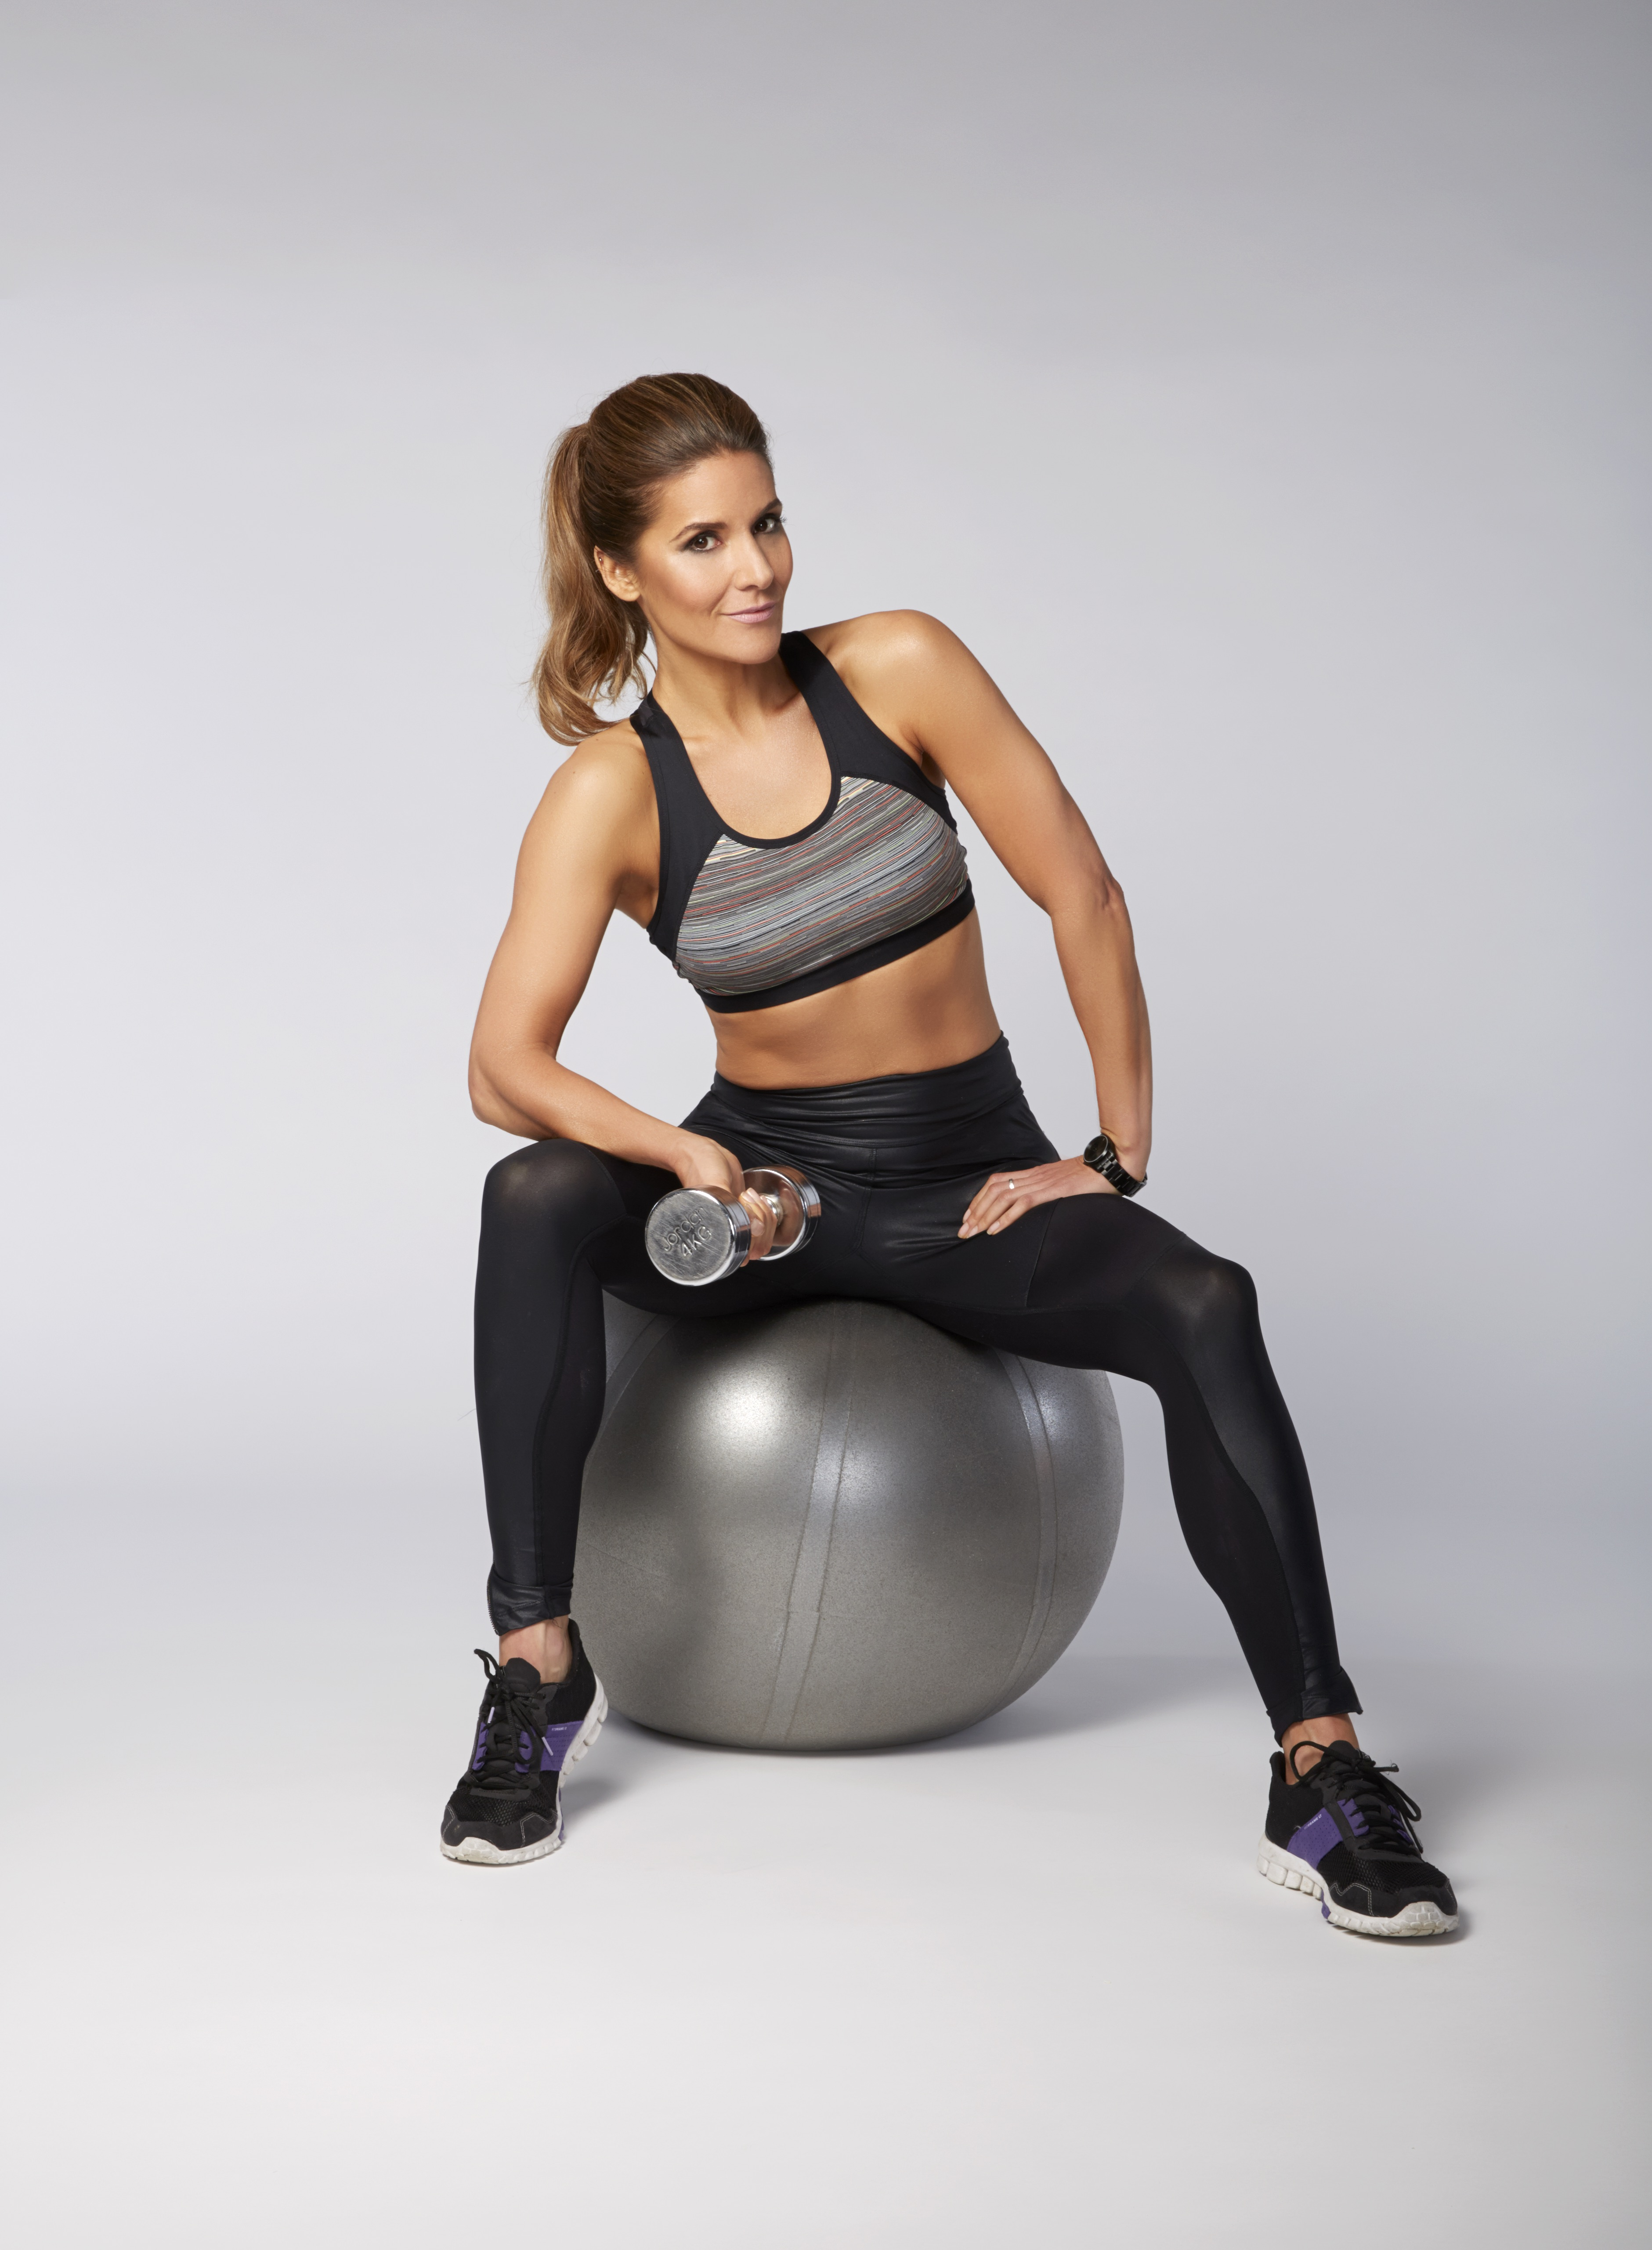 Amanda Byram, presenter and fitness model talks about ...